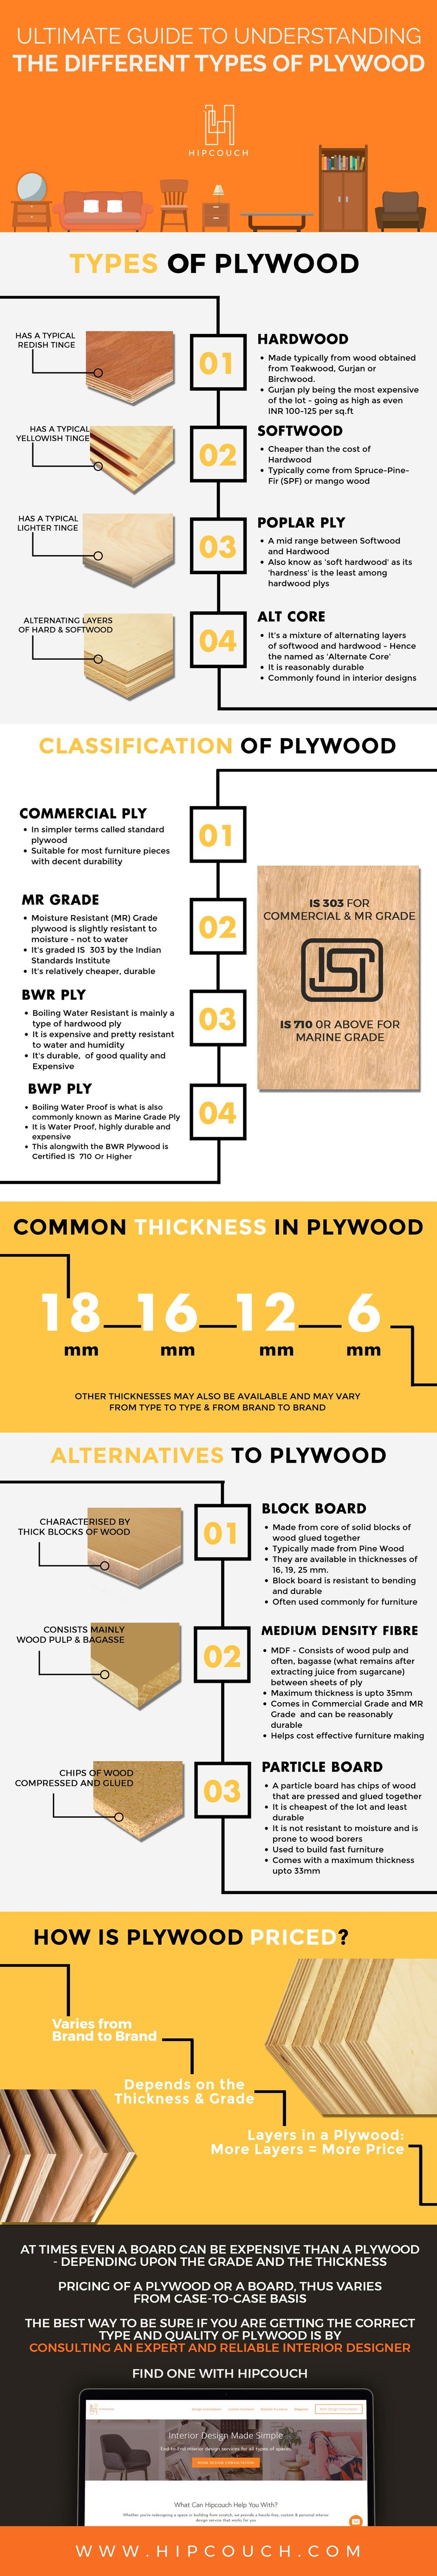 TYPES-OF-PLYWOOD-Infographic.jpg